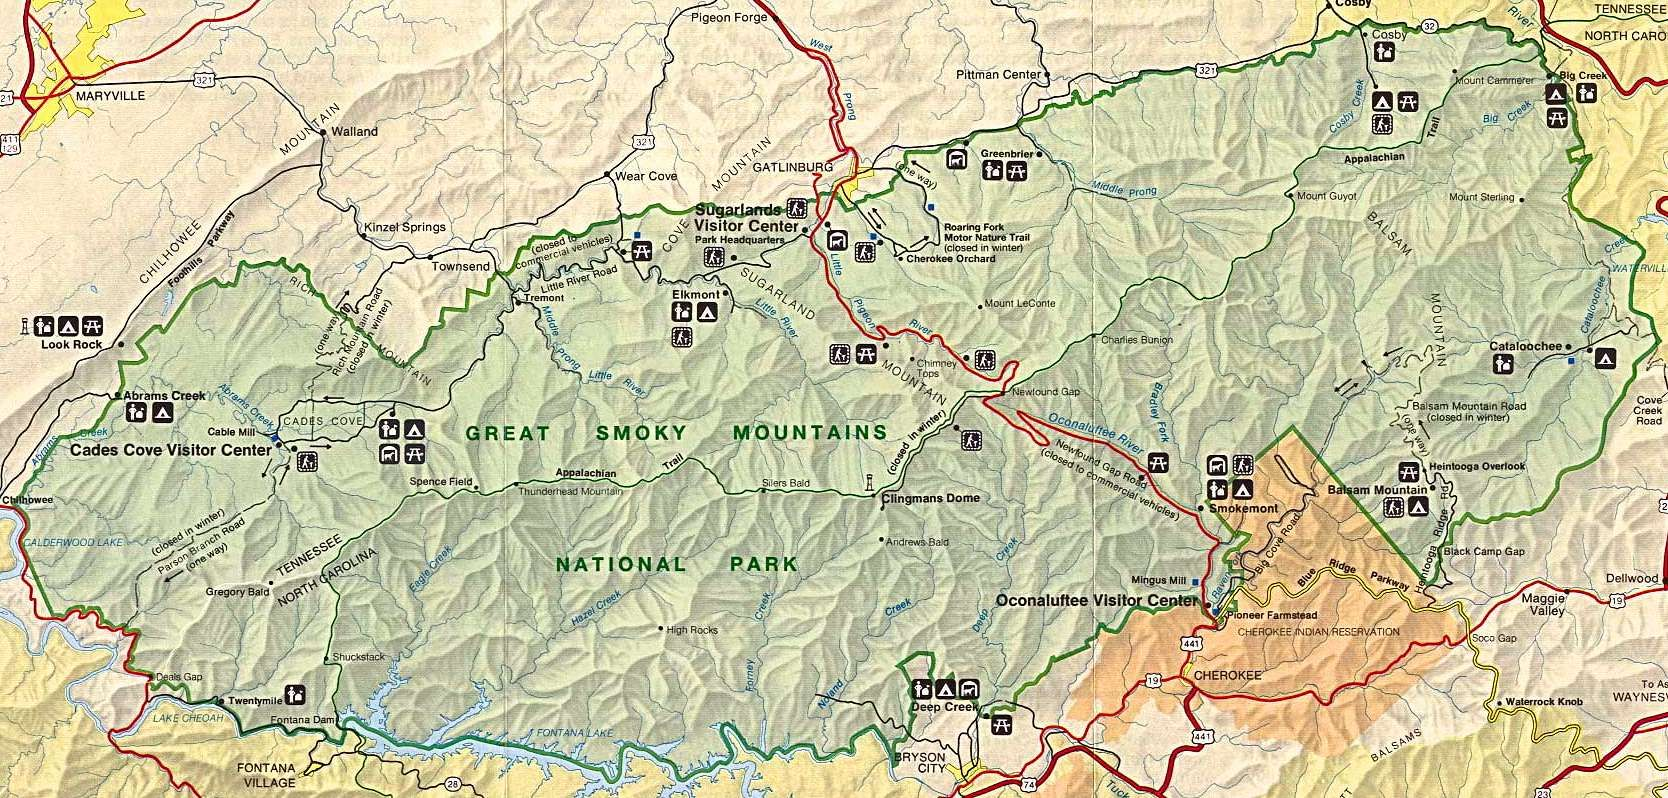 Smoky Mountains Favorite Places Spaces Pinterest Smoky - National parks locations map